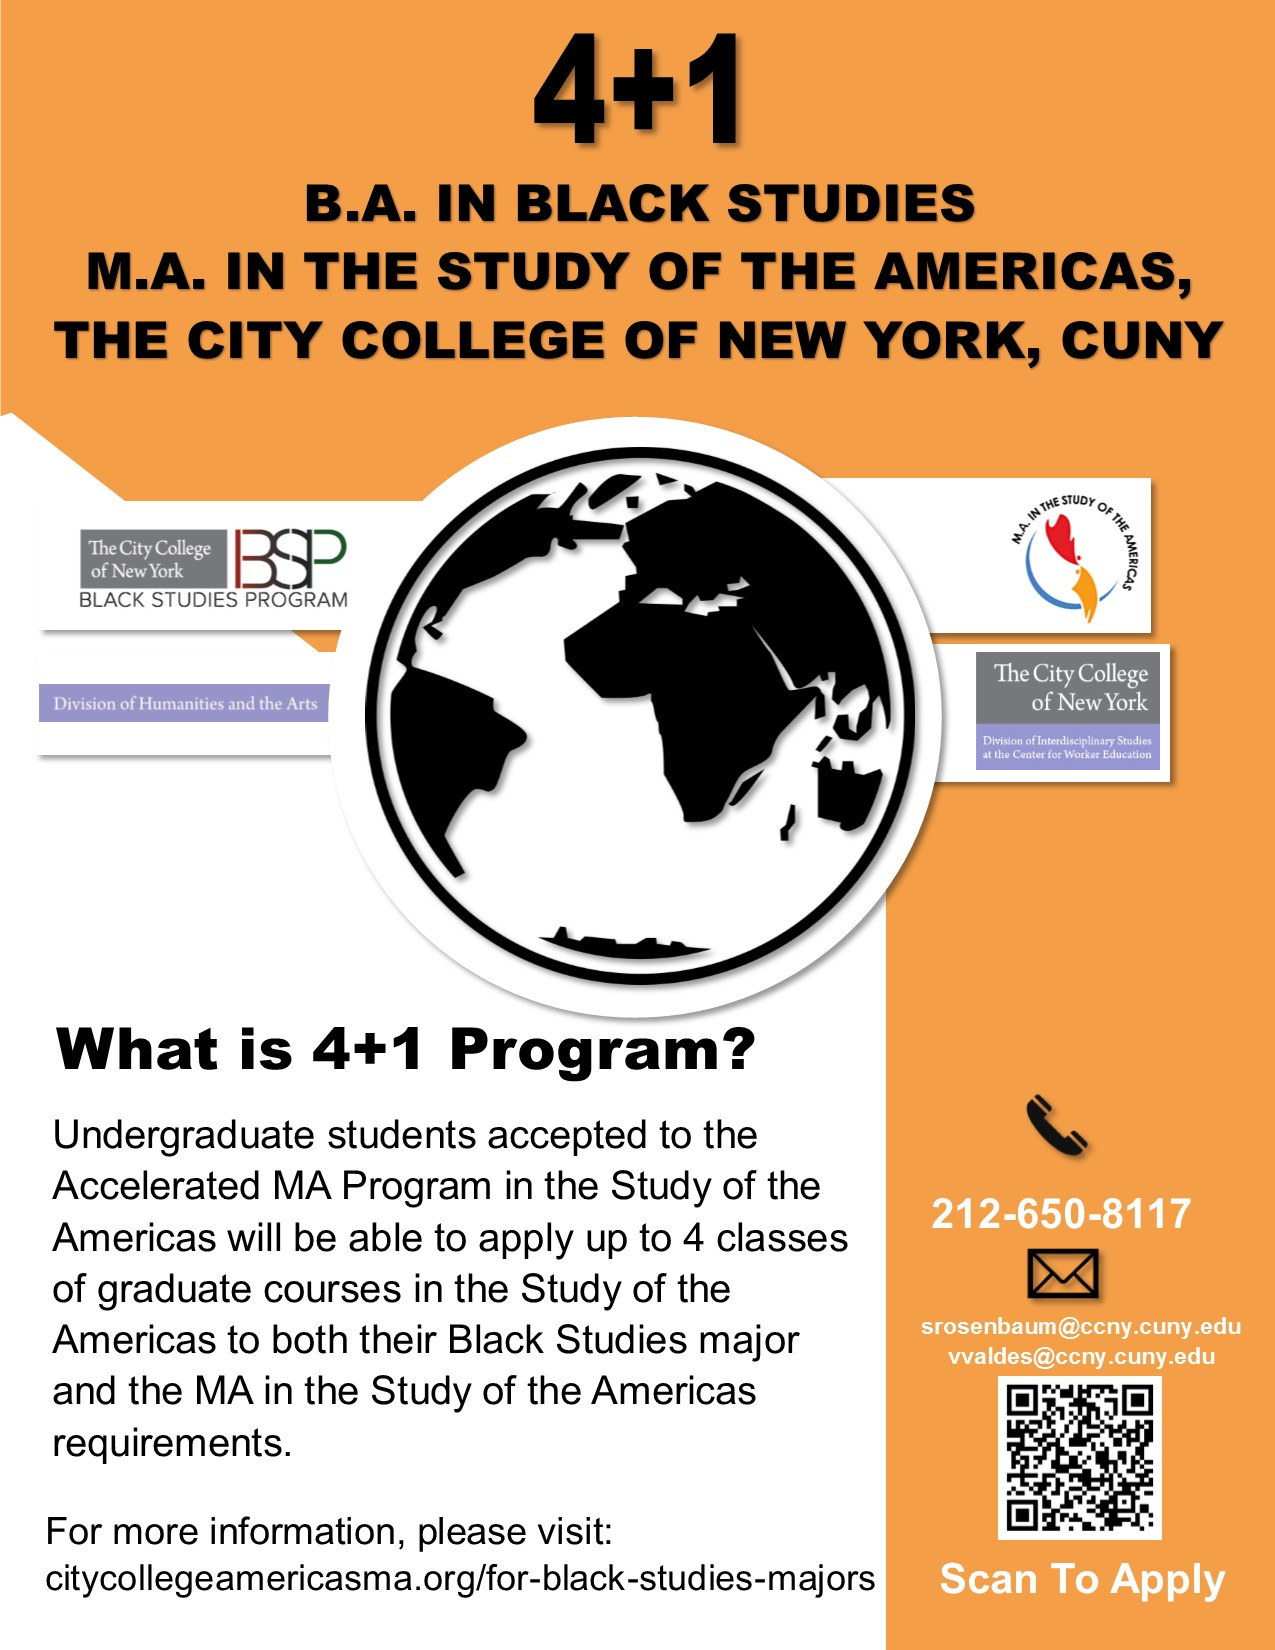 B.A. IN BLACK STUDIES M.A. IN THE STUDY OF THE AMERICAS, THE CITY COLLEGE OF NEW YORK, CUNY. Undergraduate students accepted to the Accelerated MA Program in the Study of the Americas will be able to apply up to 4 classes of graduate courses in the Study of the Americas to both their Black Studies major and the MA in the Study of the Americas requirements.212-650-8117srosenbaum@ccny.cuny.edu vvaldes@ccny.cuny.edu